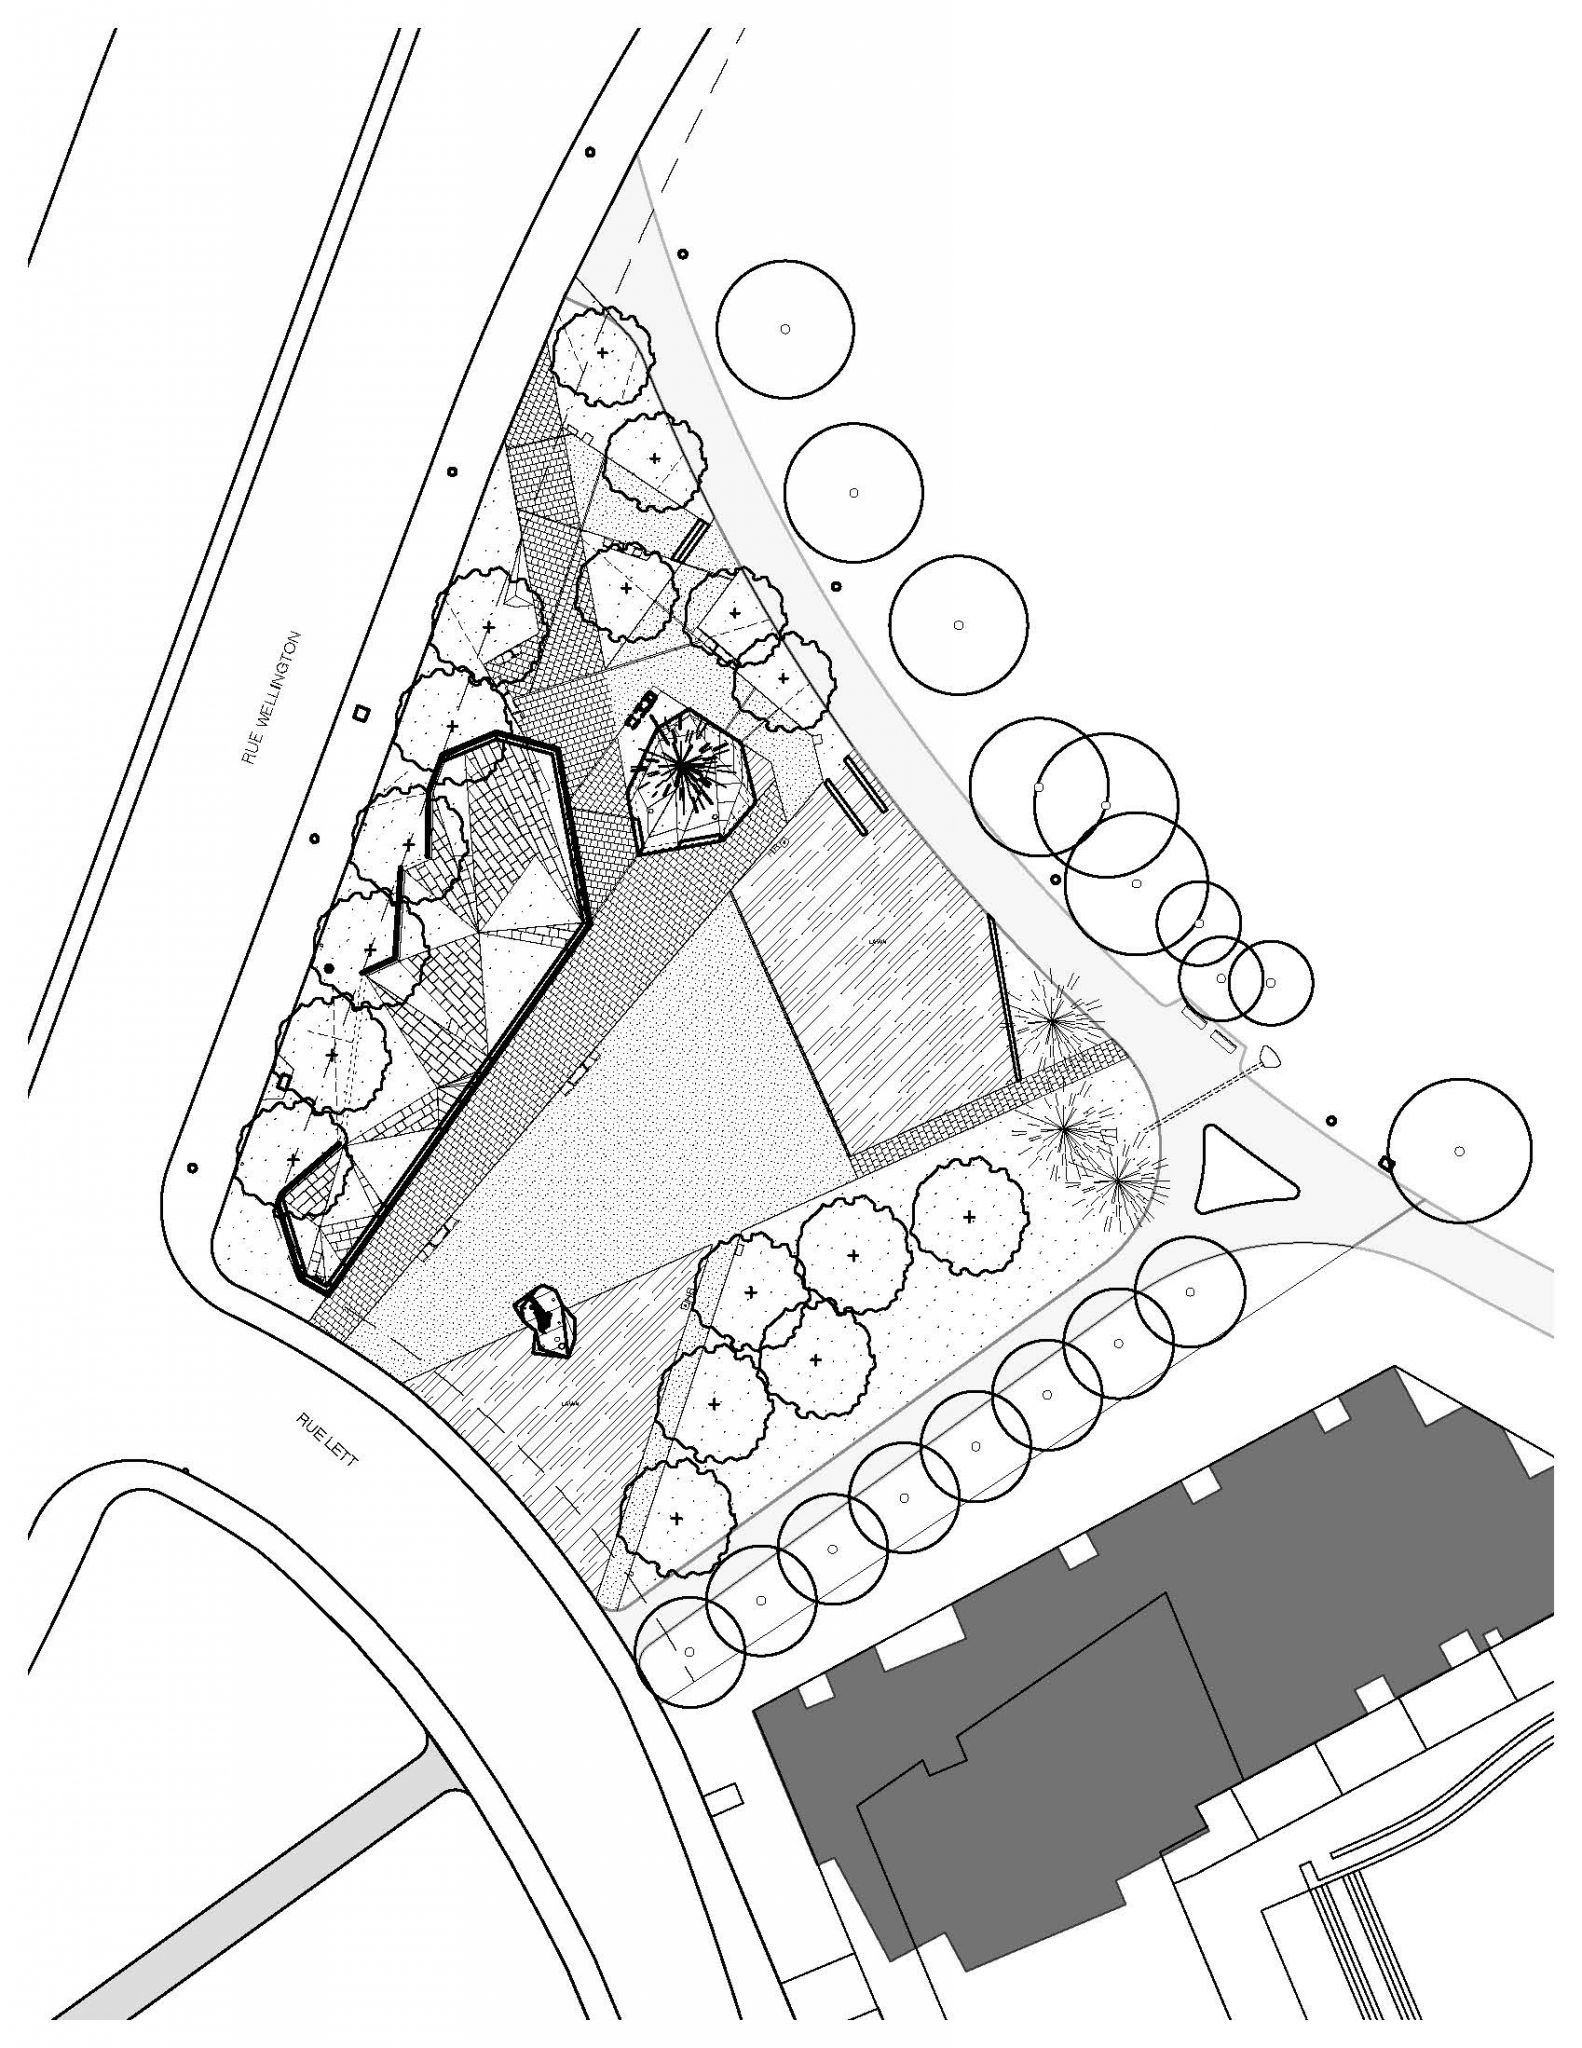 The site plan of the Canadian Firefi ghters Memorial and ground improvements.